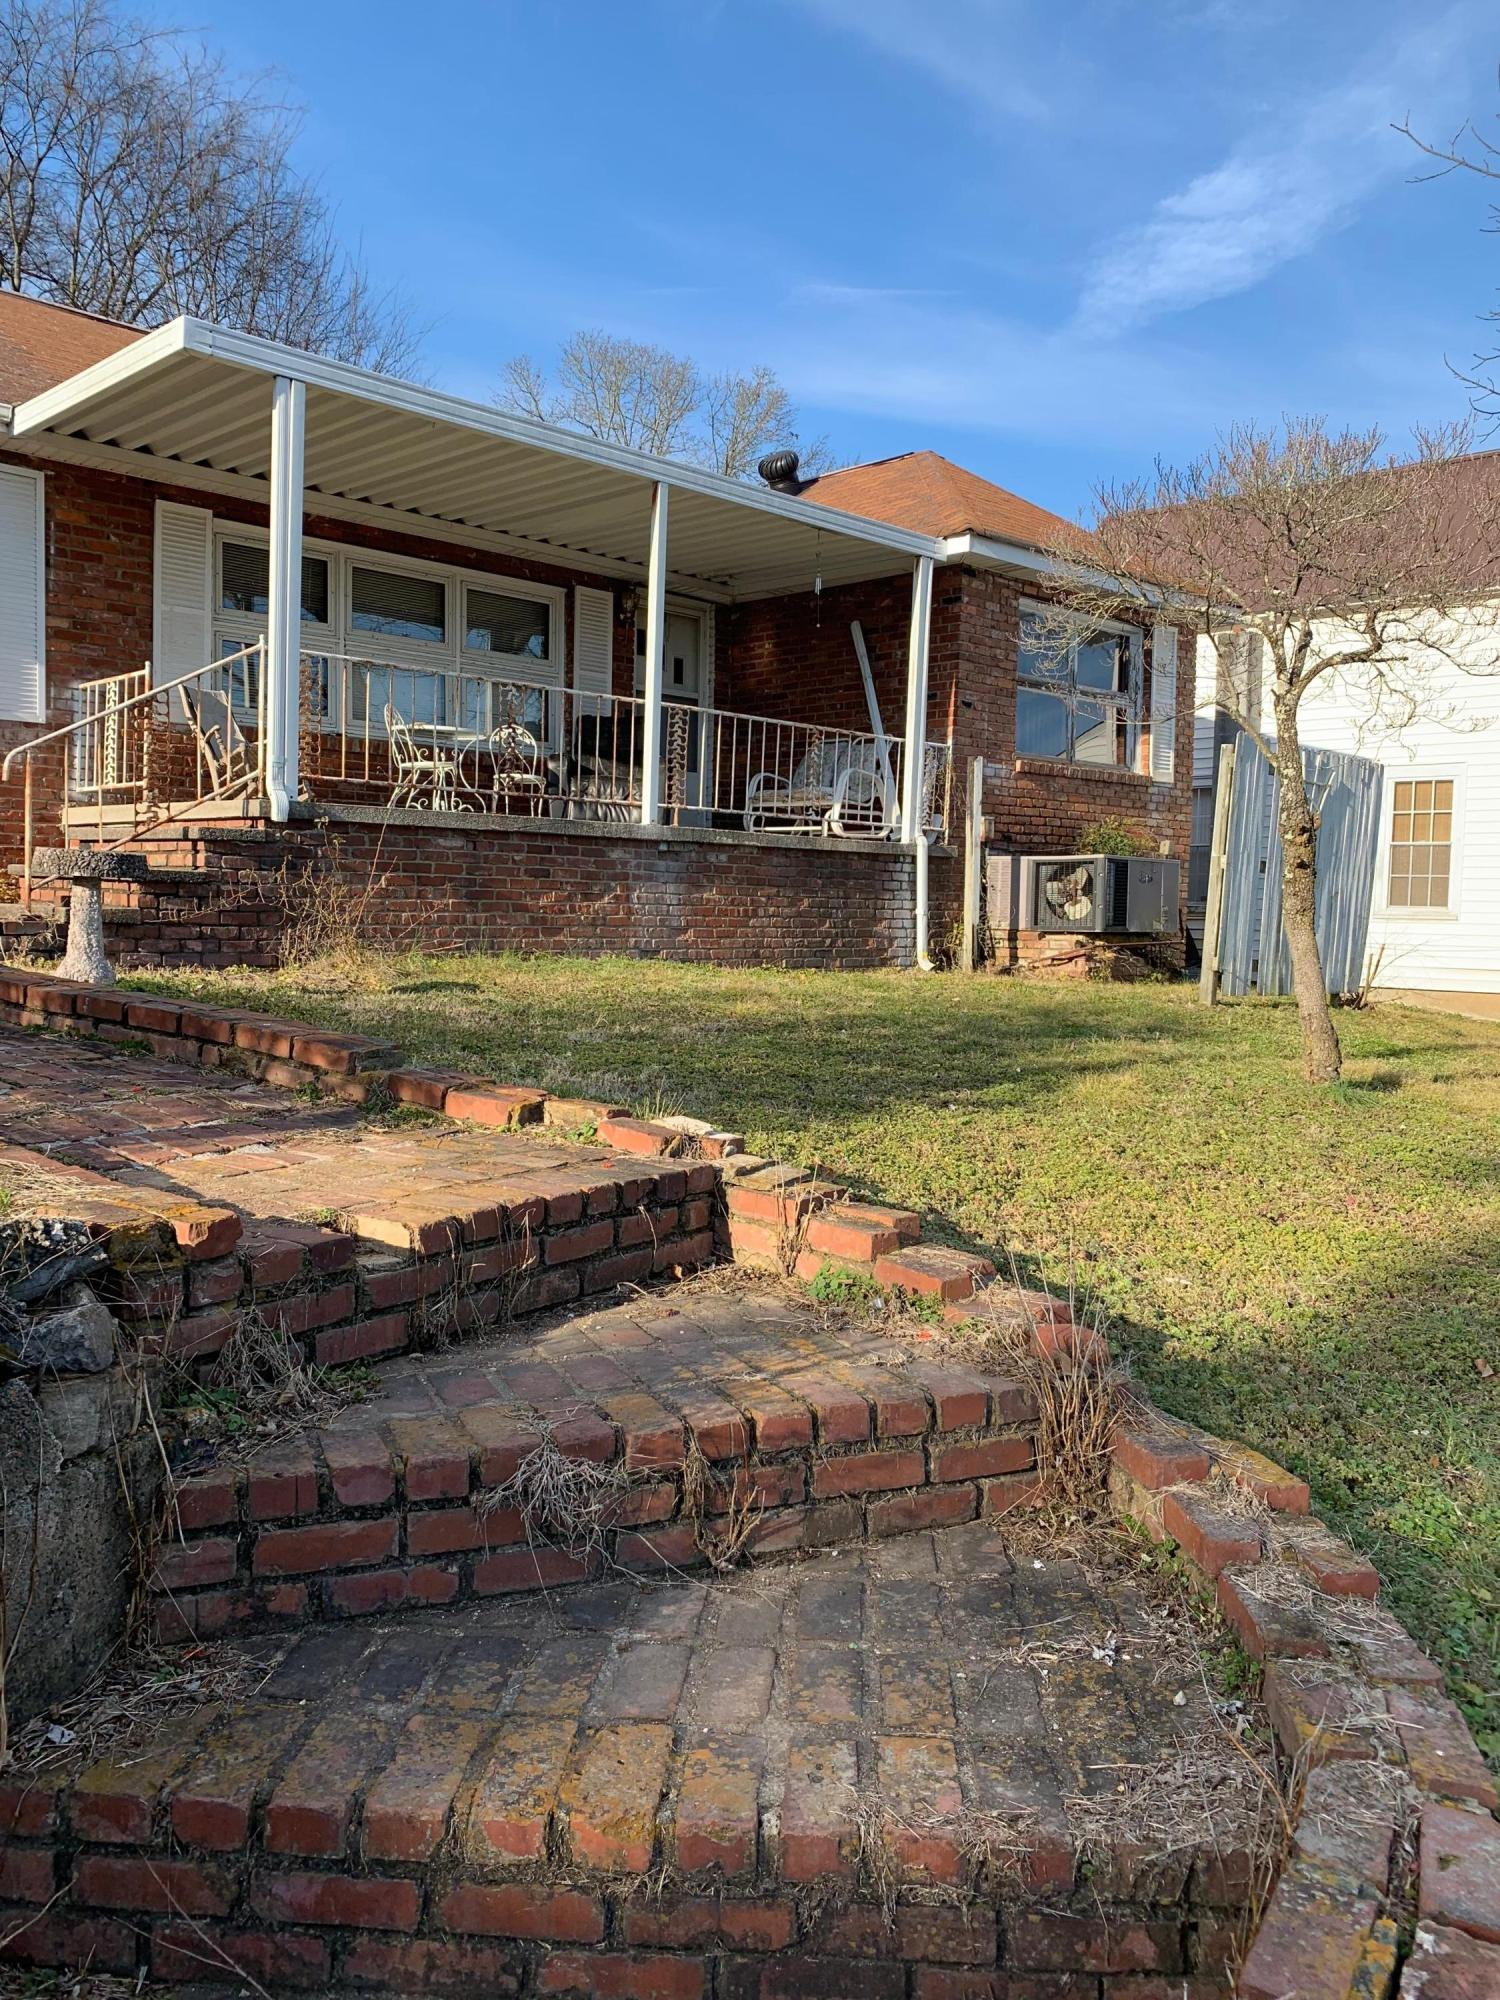 521 & 525 West 2nd, Lenoir City, Tennessee 37771, 3 Bedrooms Bedrooms, ,2 BathroomsBathrooms,Single Family,For Sale,West 2nd,1068632